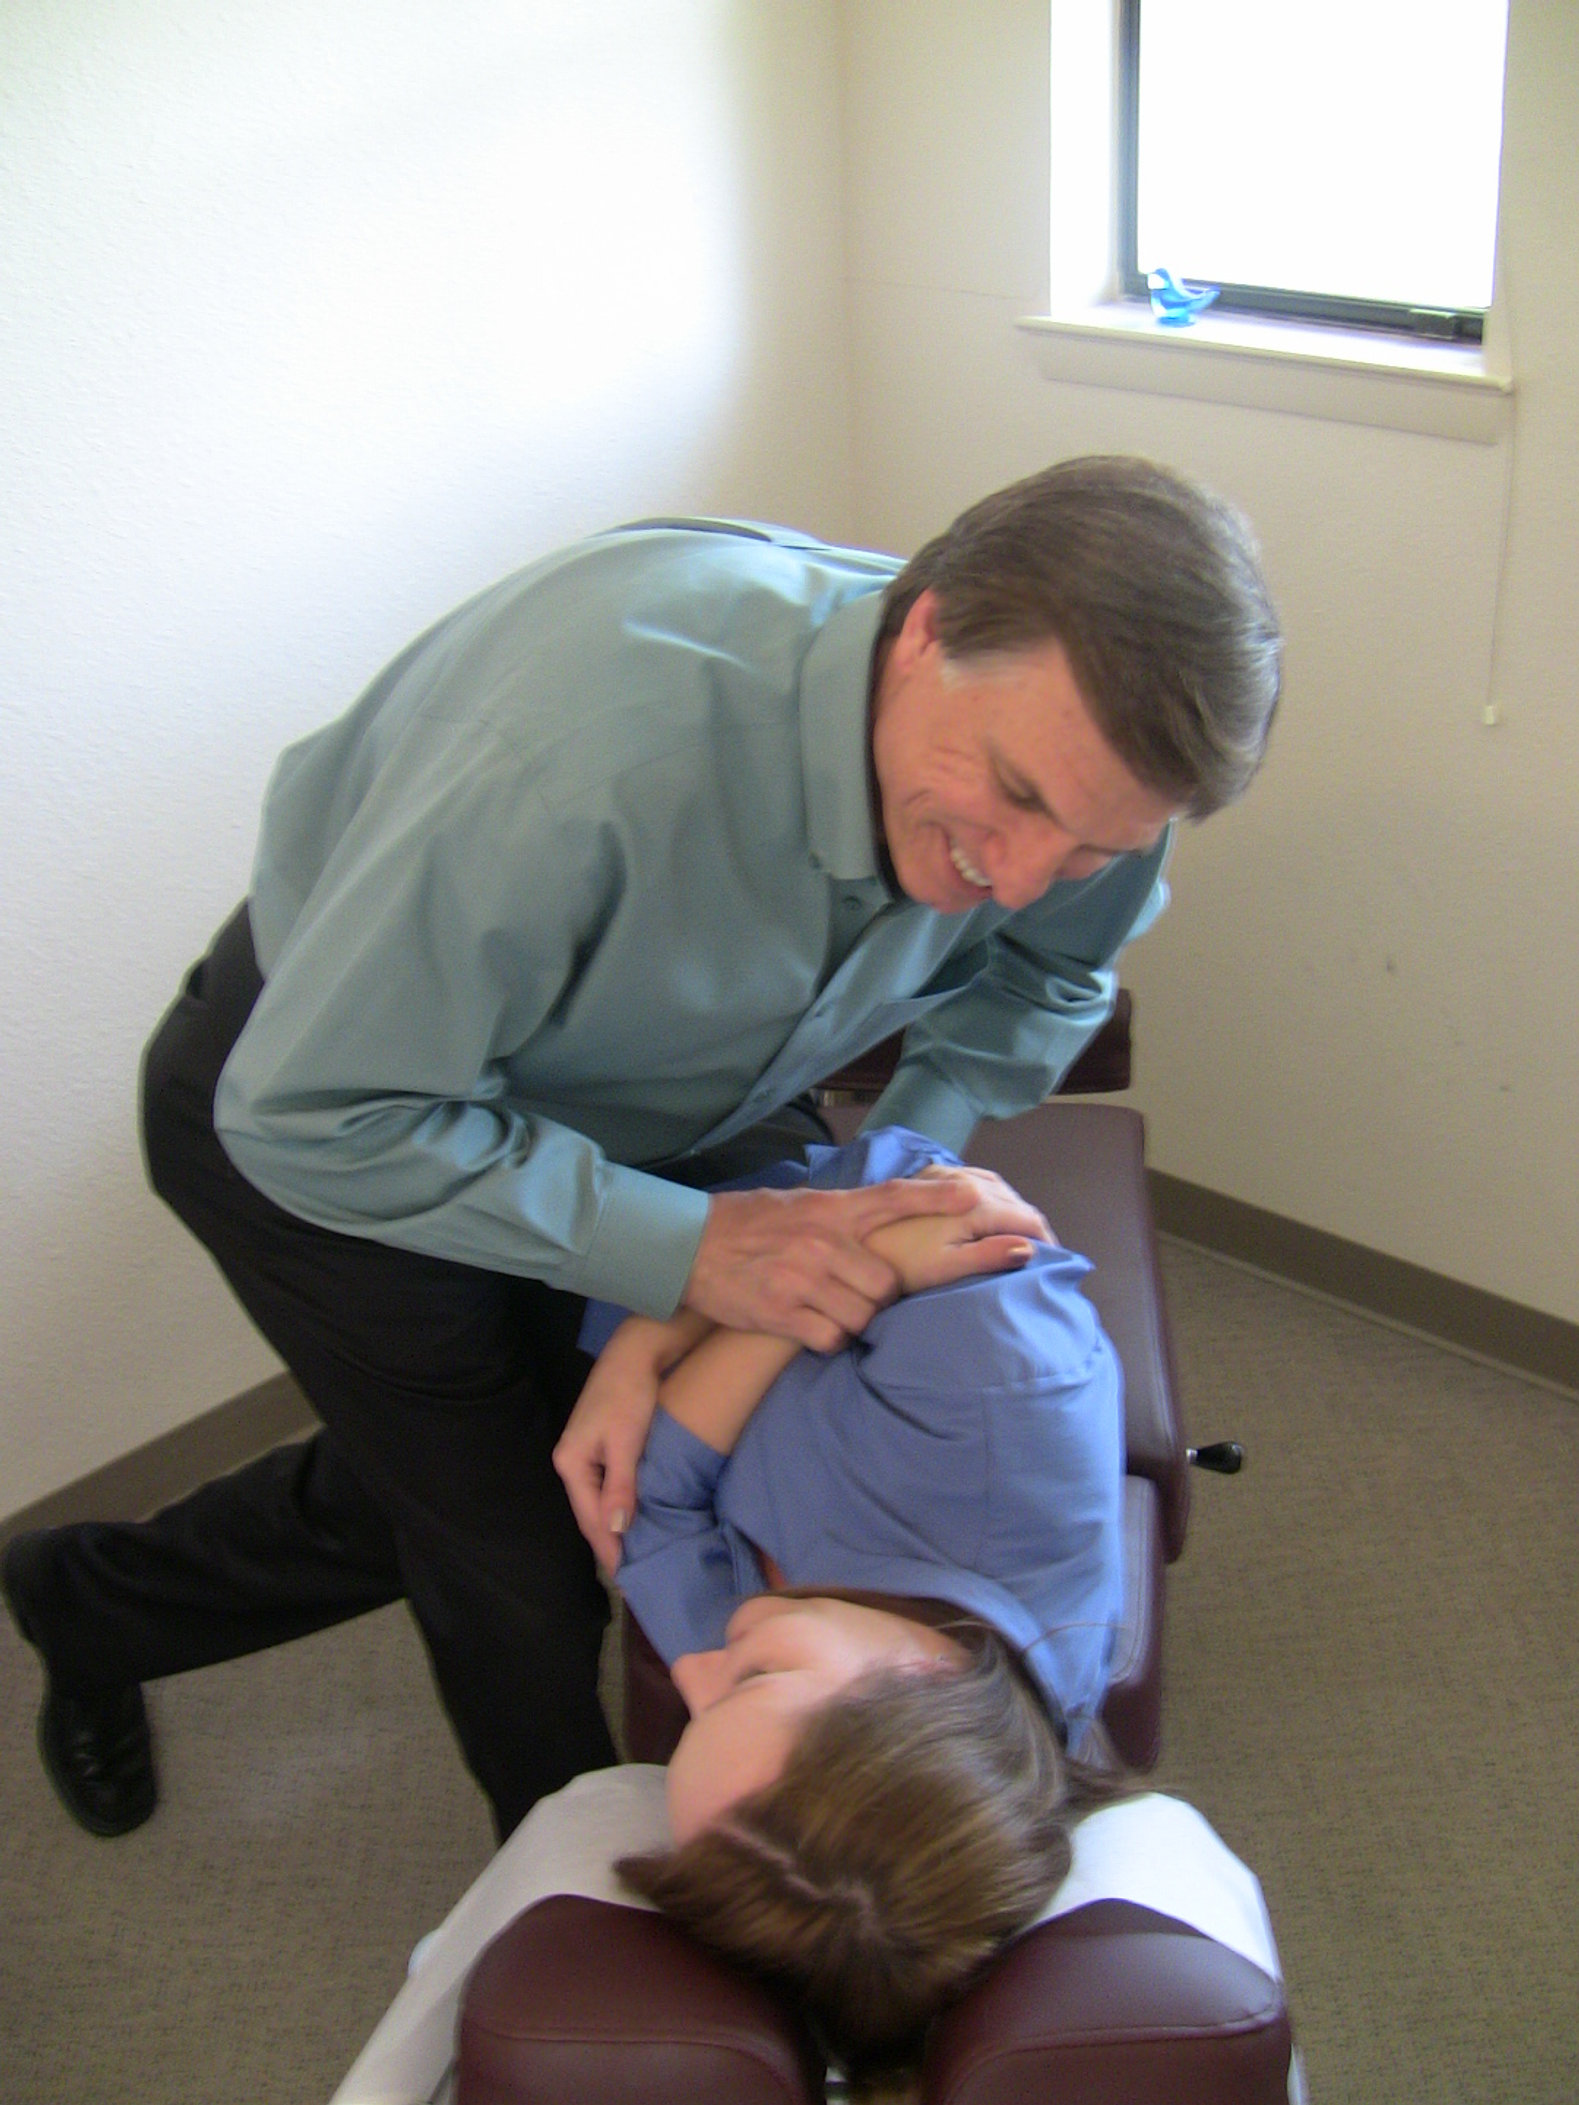 Chiropractor Near Me South Austin 5 Star Rated 512 447